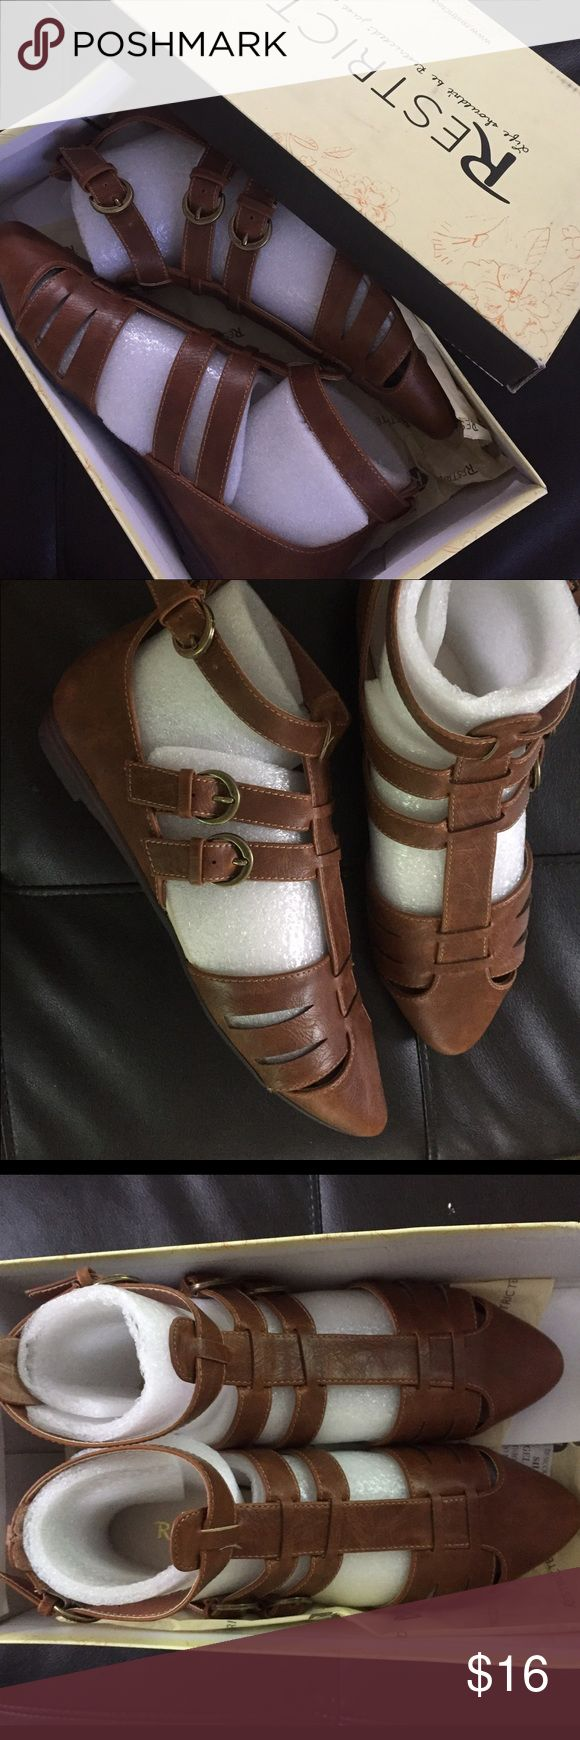 Brown gladiator sandals Restricted 7 NEW New with box size 7 brown coco gladiator Litta style sandals Restricted brand. Adjustable straps Restricted Shoes Sandals